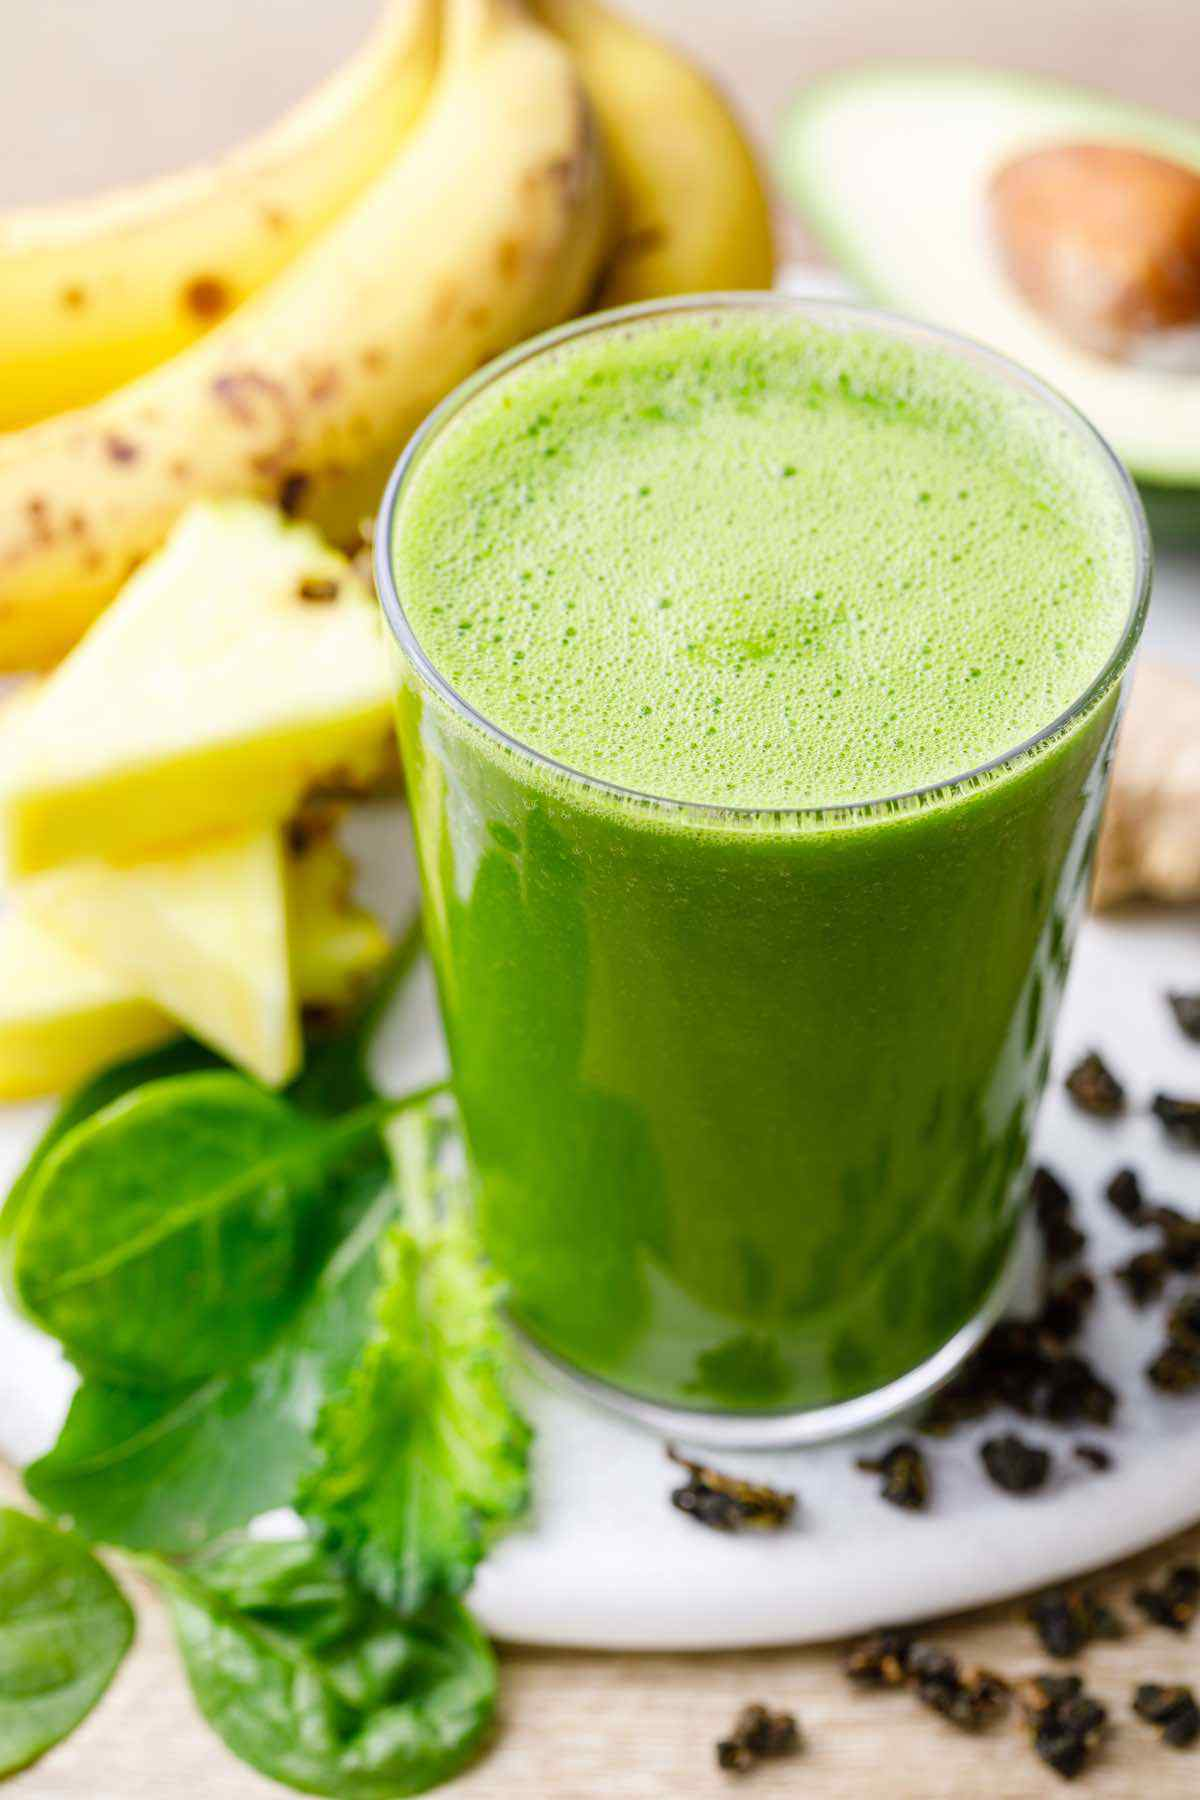 Greens and Green Tea Smoothie for Healthy Energy